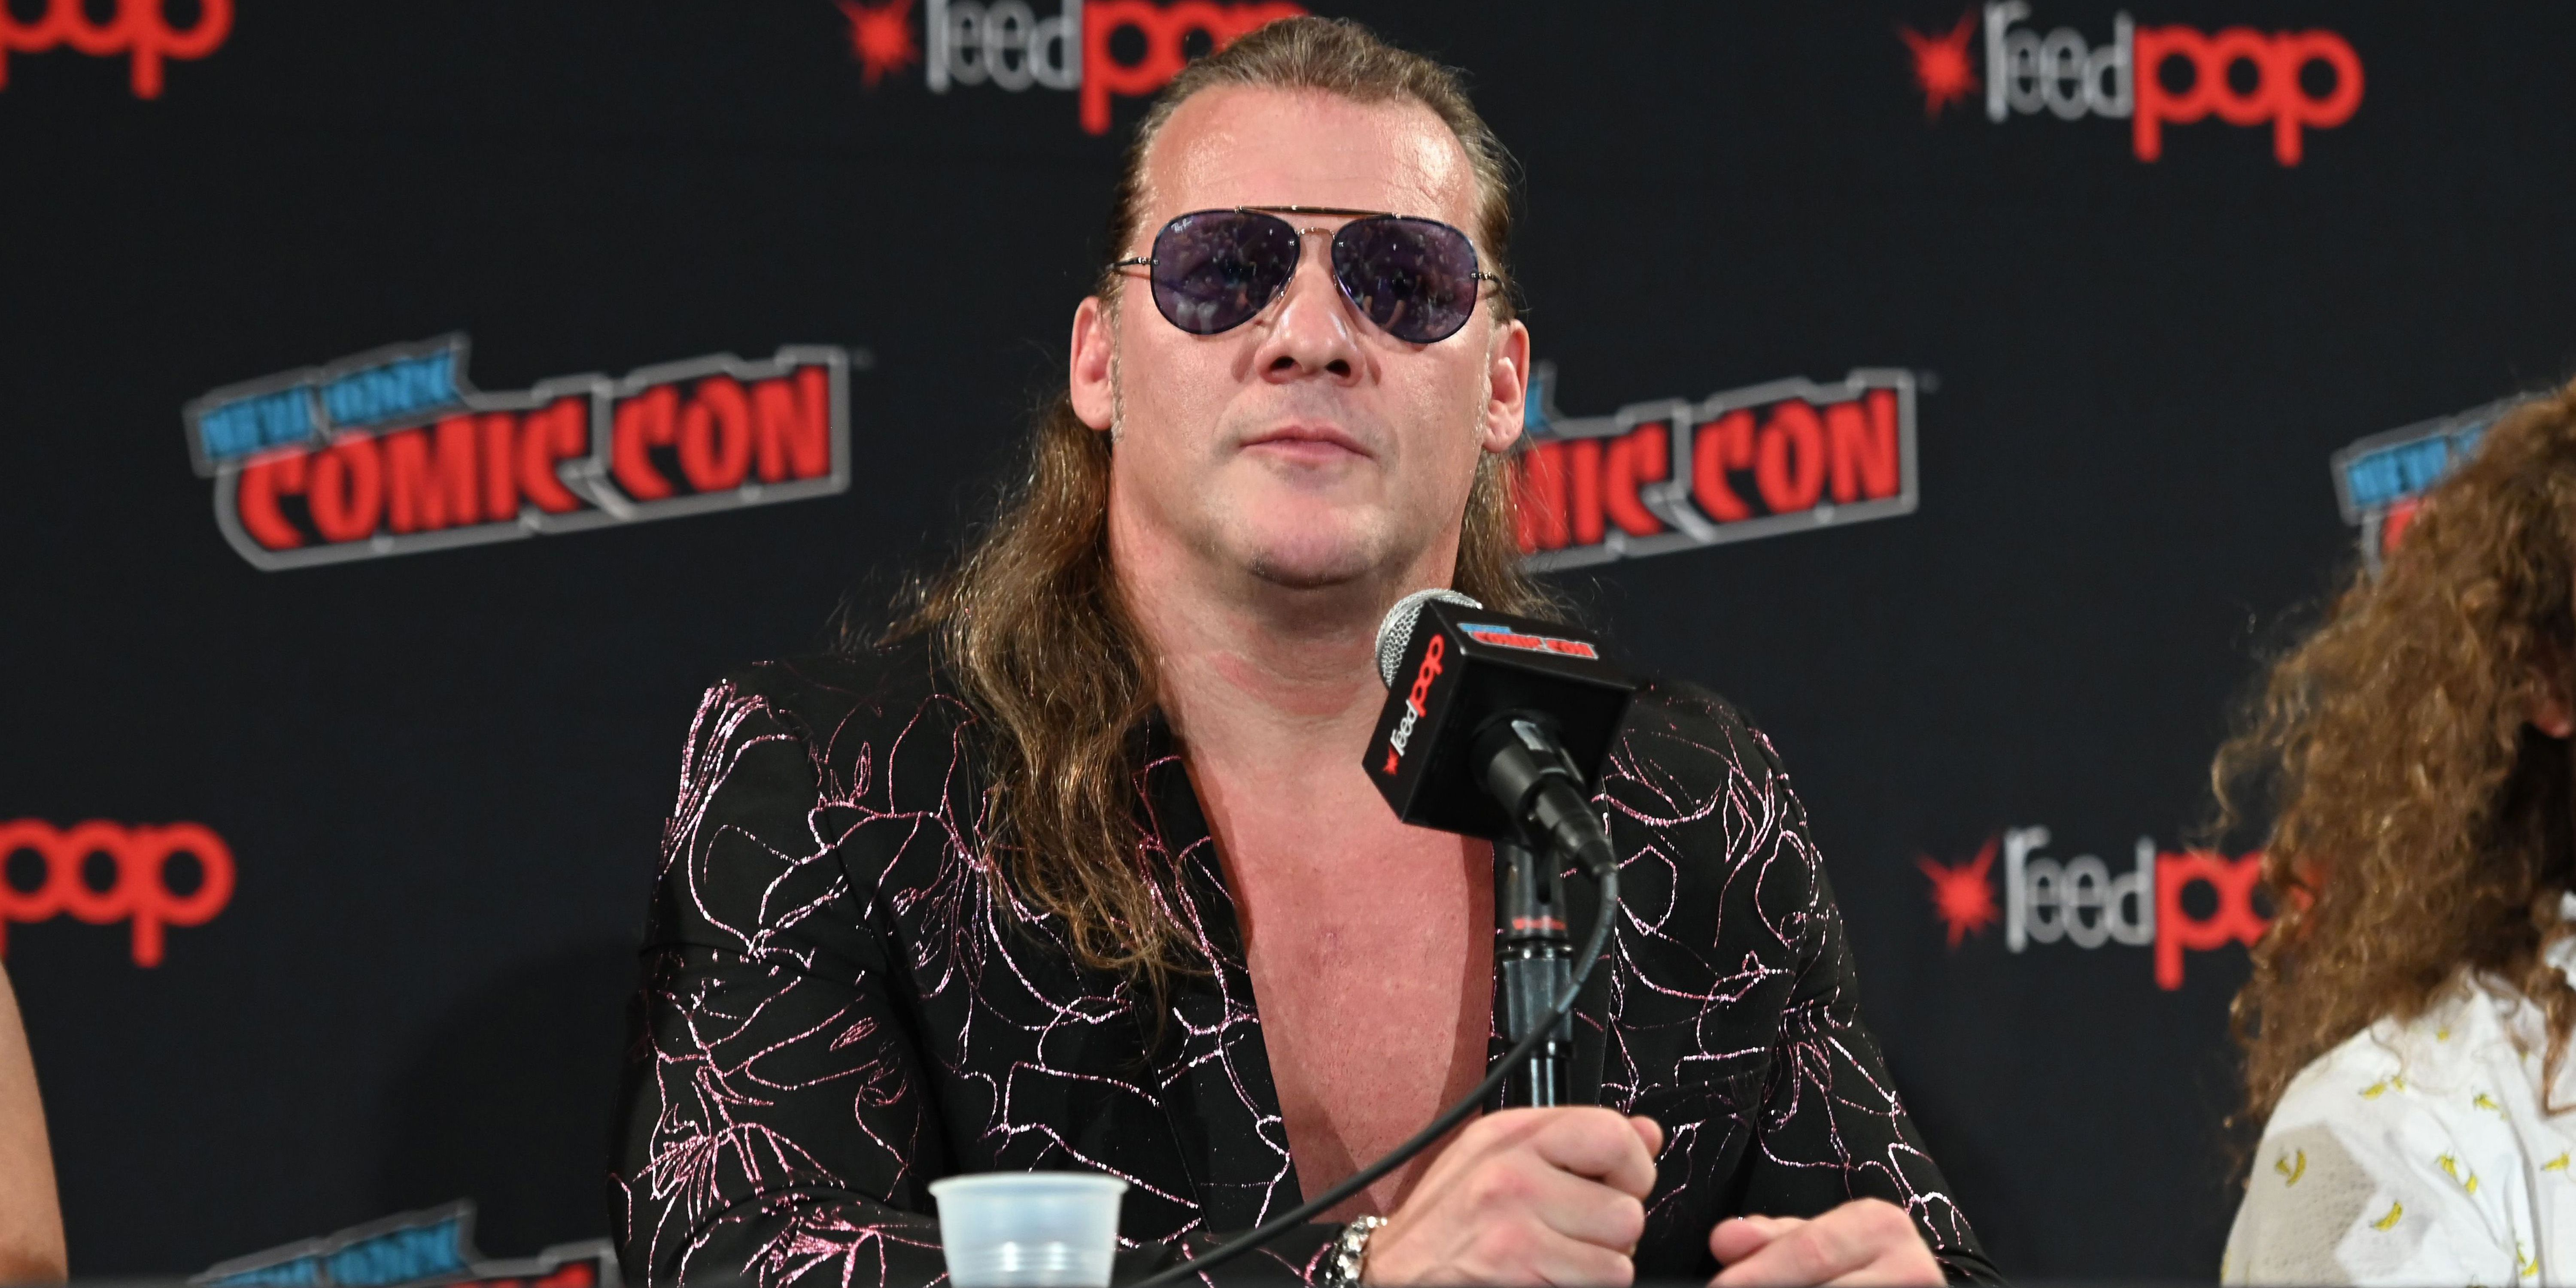 AEW: Chris Jericho Talks His Future in Wrestling and More | CBR